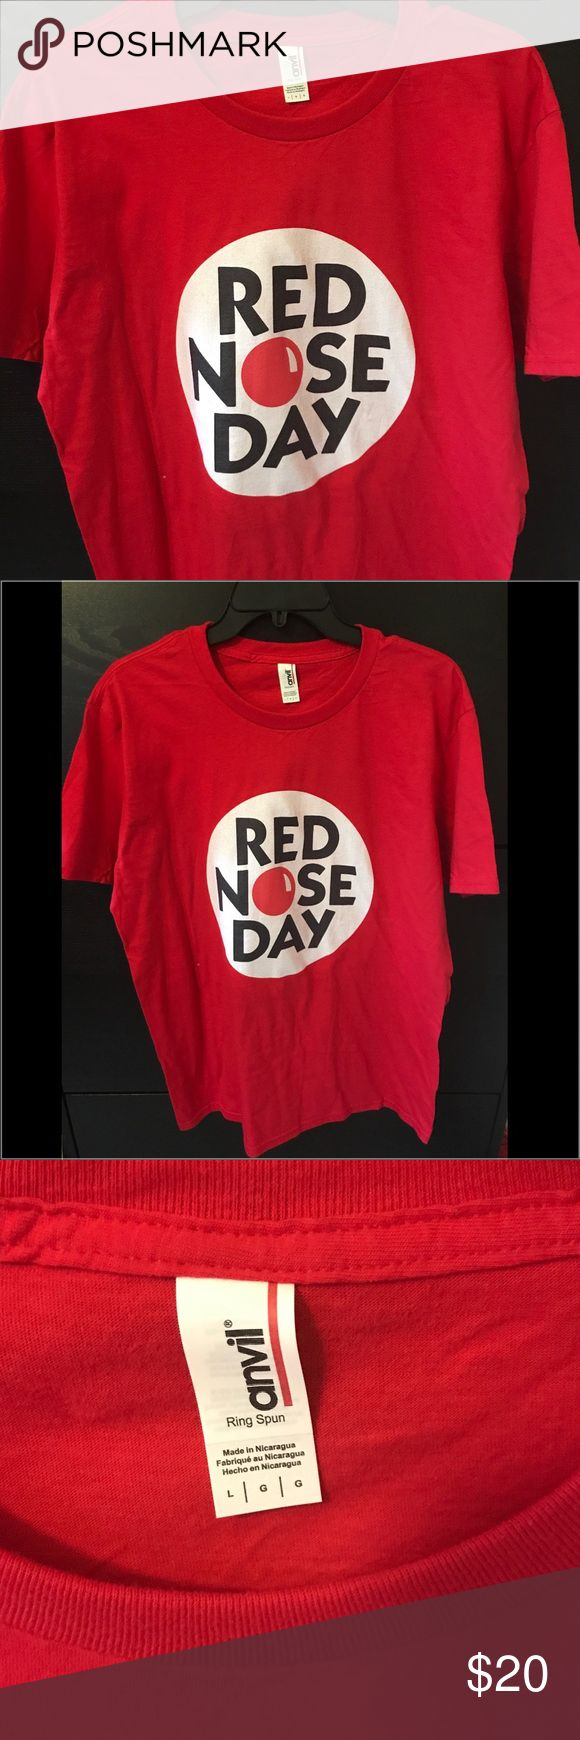 Red Nose Day Tee Red Nose Day Unisex Tee; Size Large; Red Nose Day 2017 in the USA is May 25 Tops